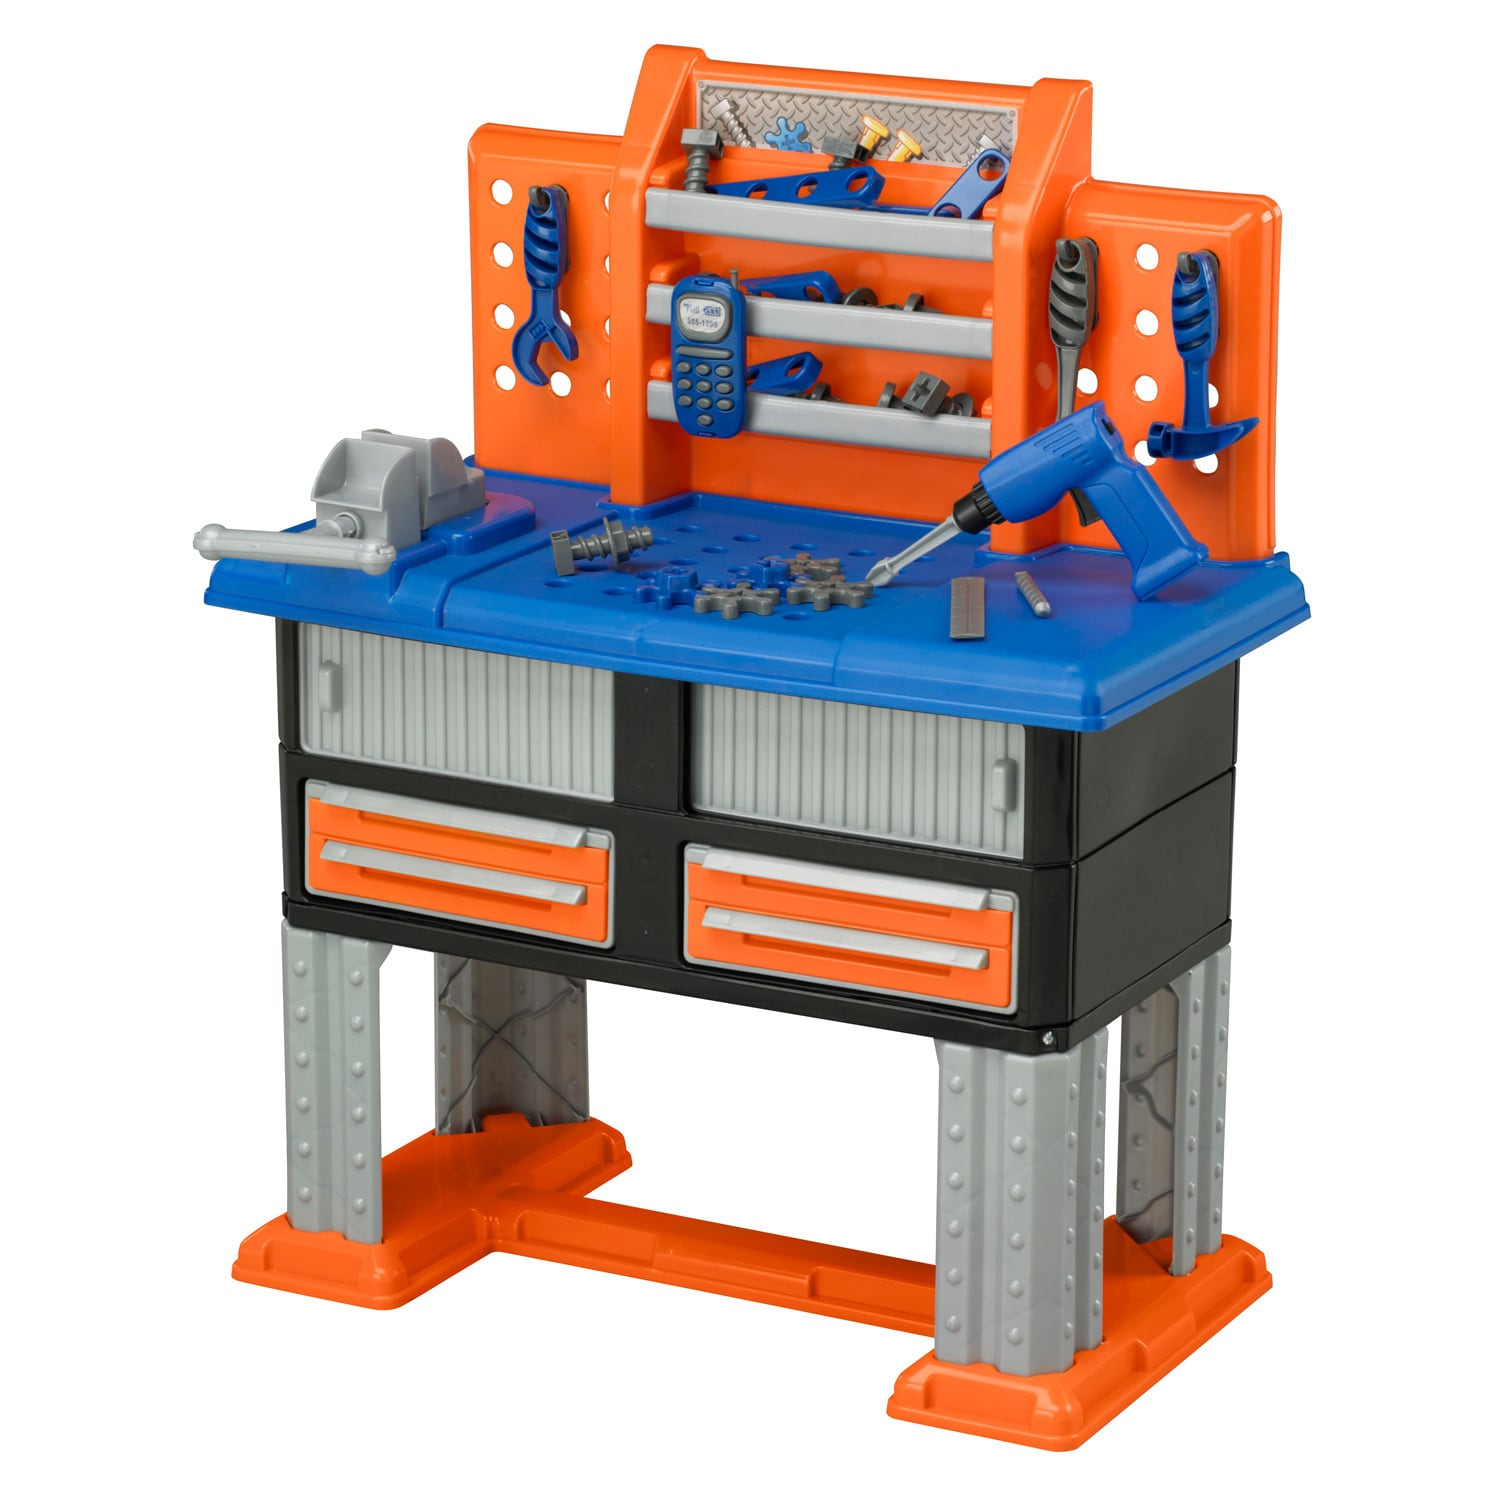 Toy Tools For Boys : Toy work bench for toddlers kids play set tools pretend